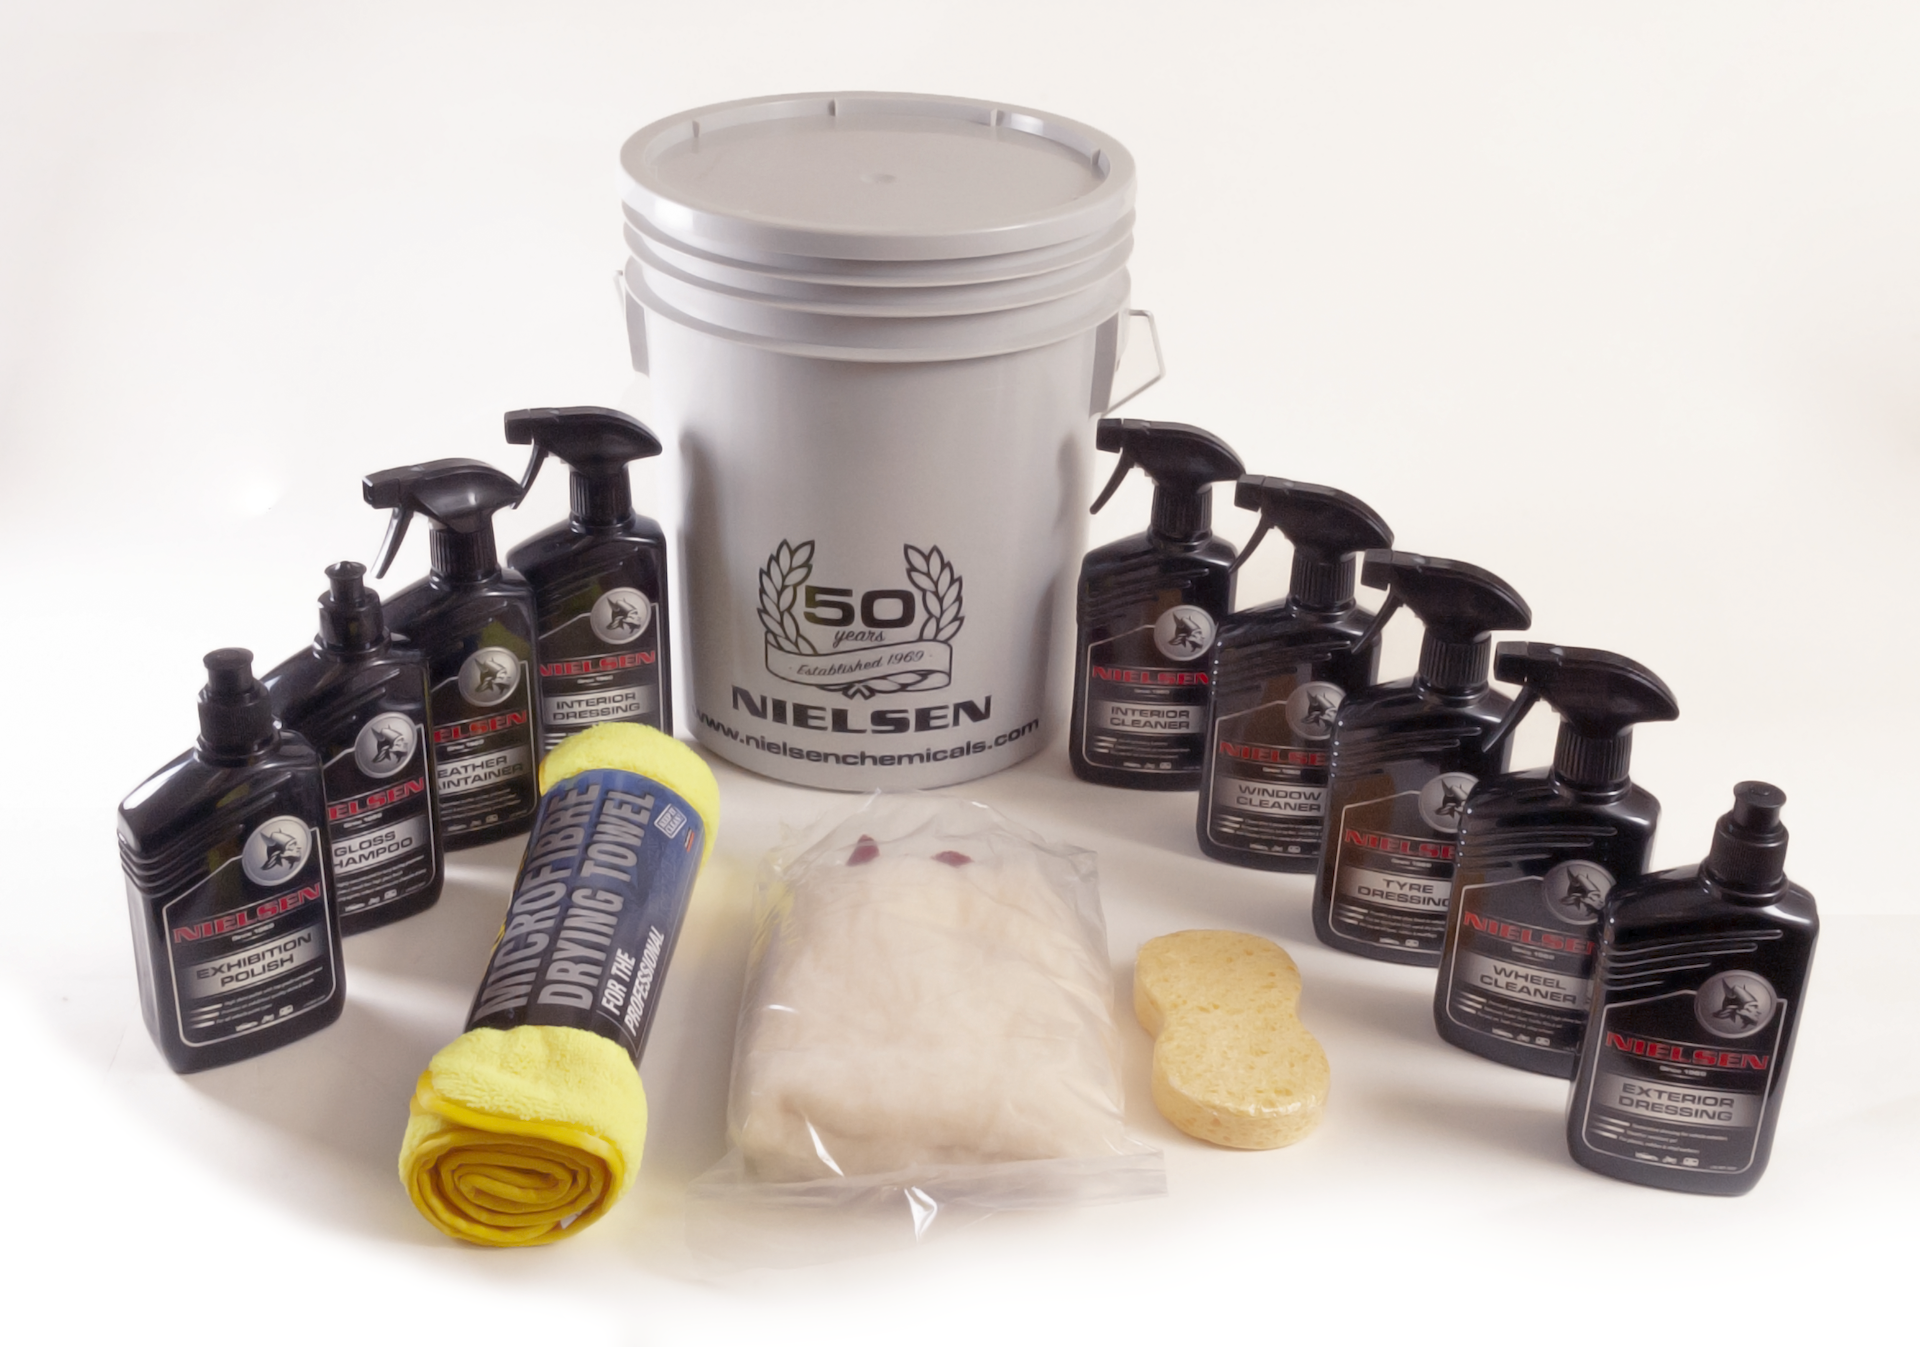 Nielsen 50th Anniversary Car Cleaning Pack